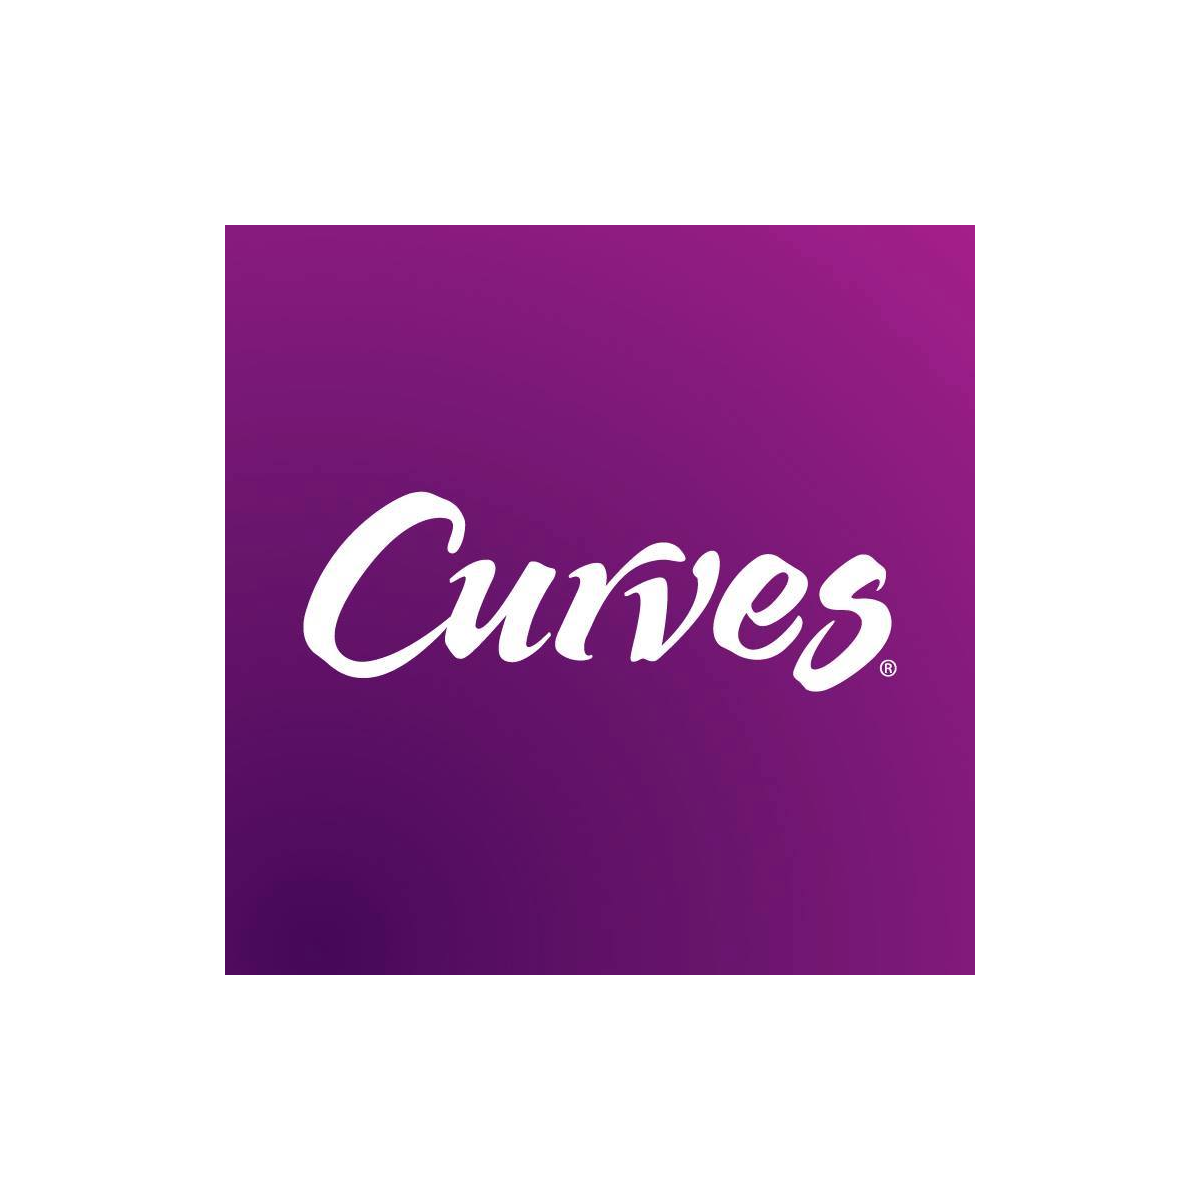 My Curves On Demand